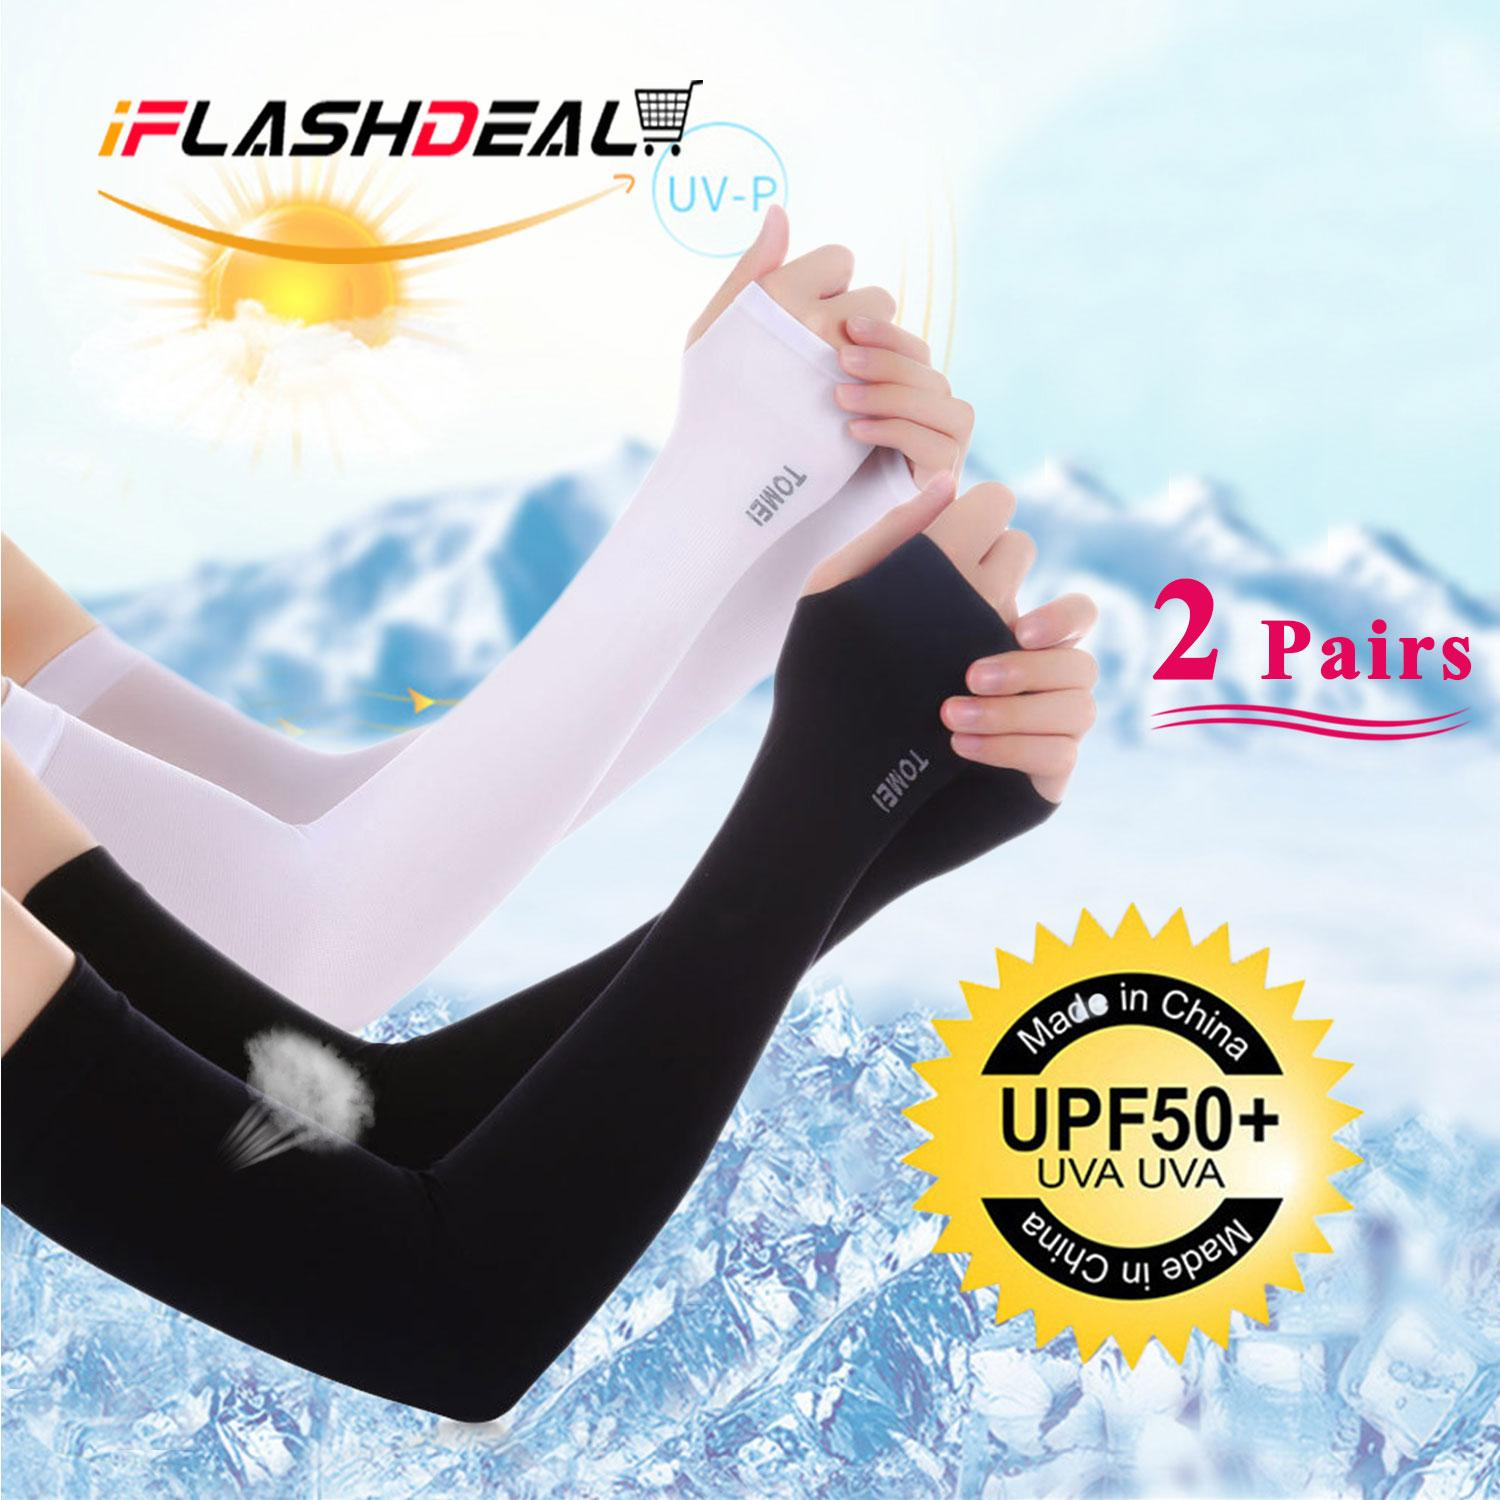 Iflashdeal 2 Pairs Men Women Arm Sleeves Cover Uv Sunlight Protection Sunscreen Cuff Sleeve Bike Cycling Motorcycle Driving Sport Outdoor Sunlight By Iflashdeal.